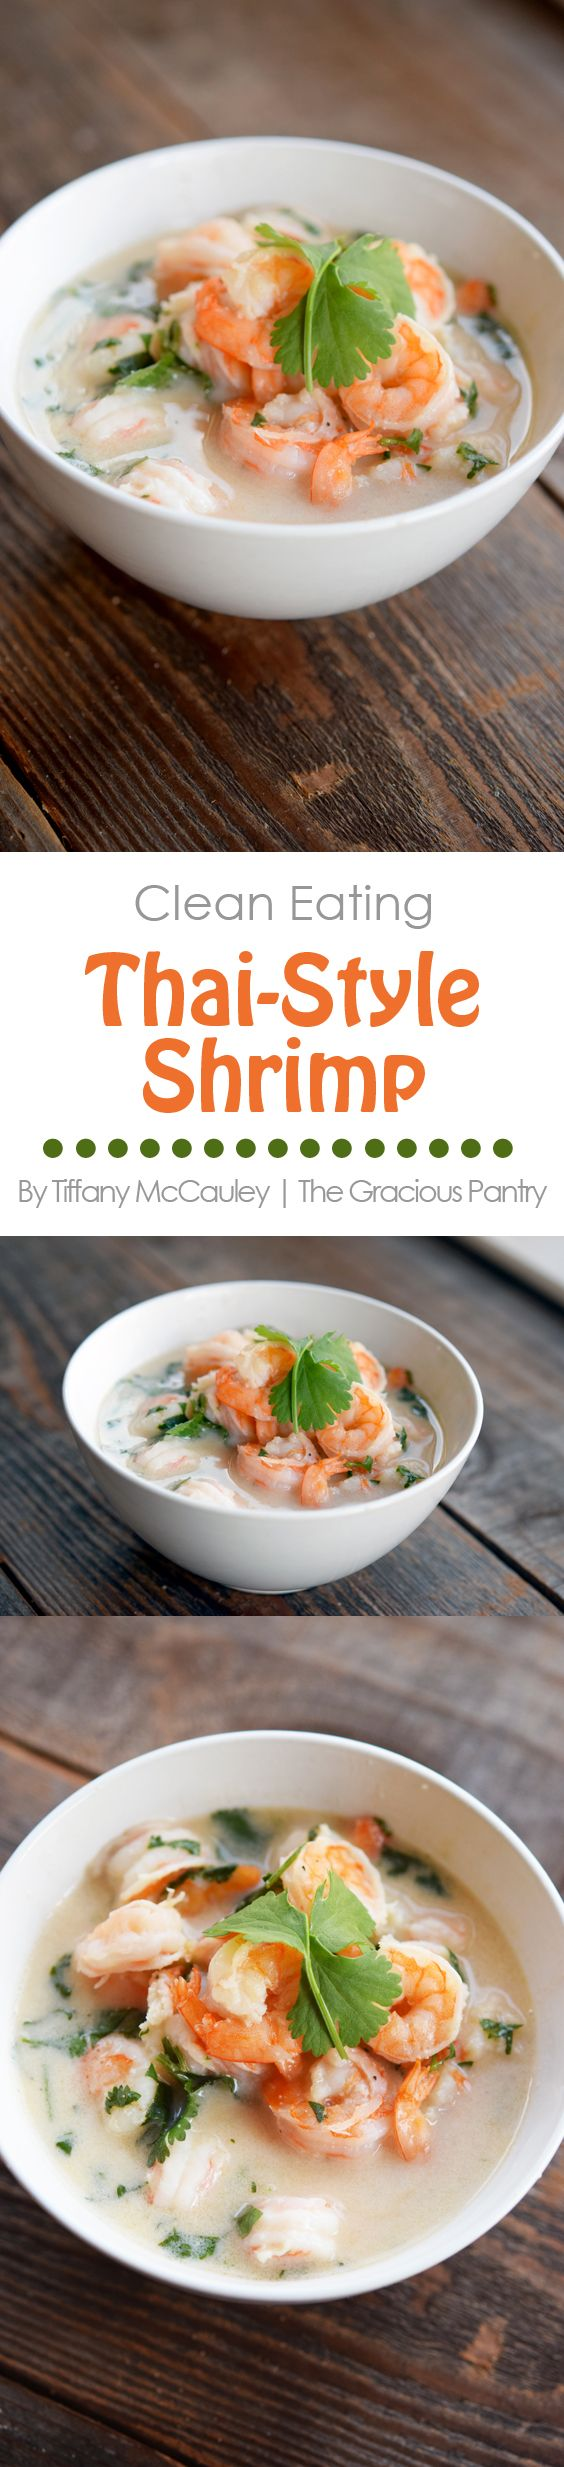 This delicious shrimp recipe is bursting with Thai flavors. Enjoy it as soup or as a topping over rice.